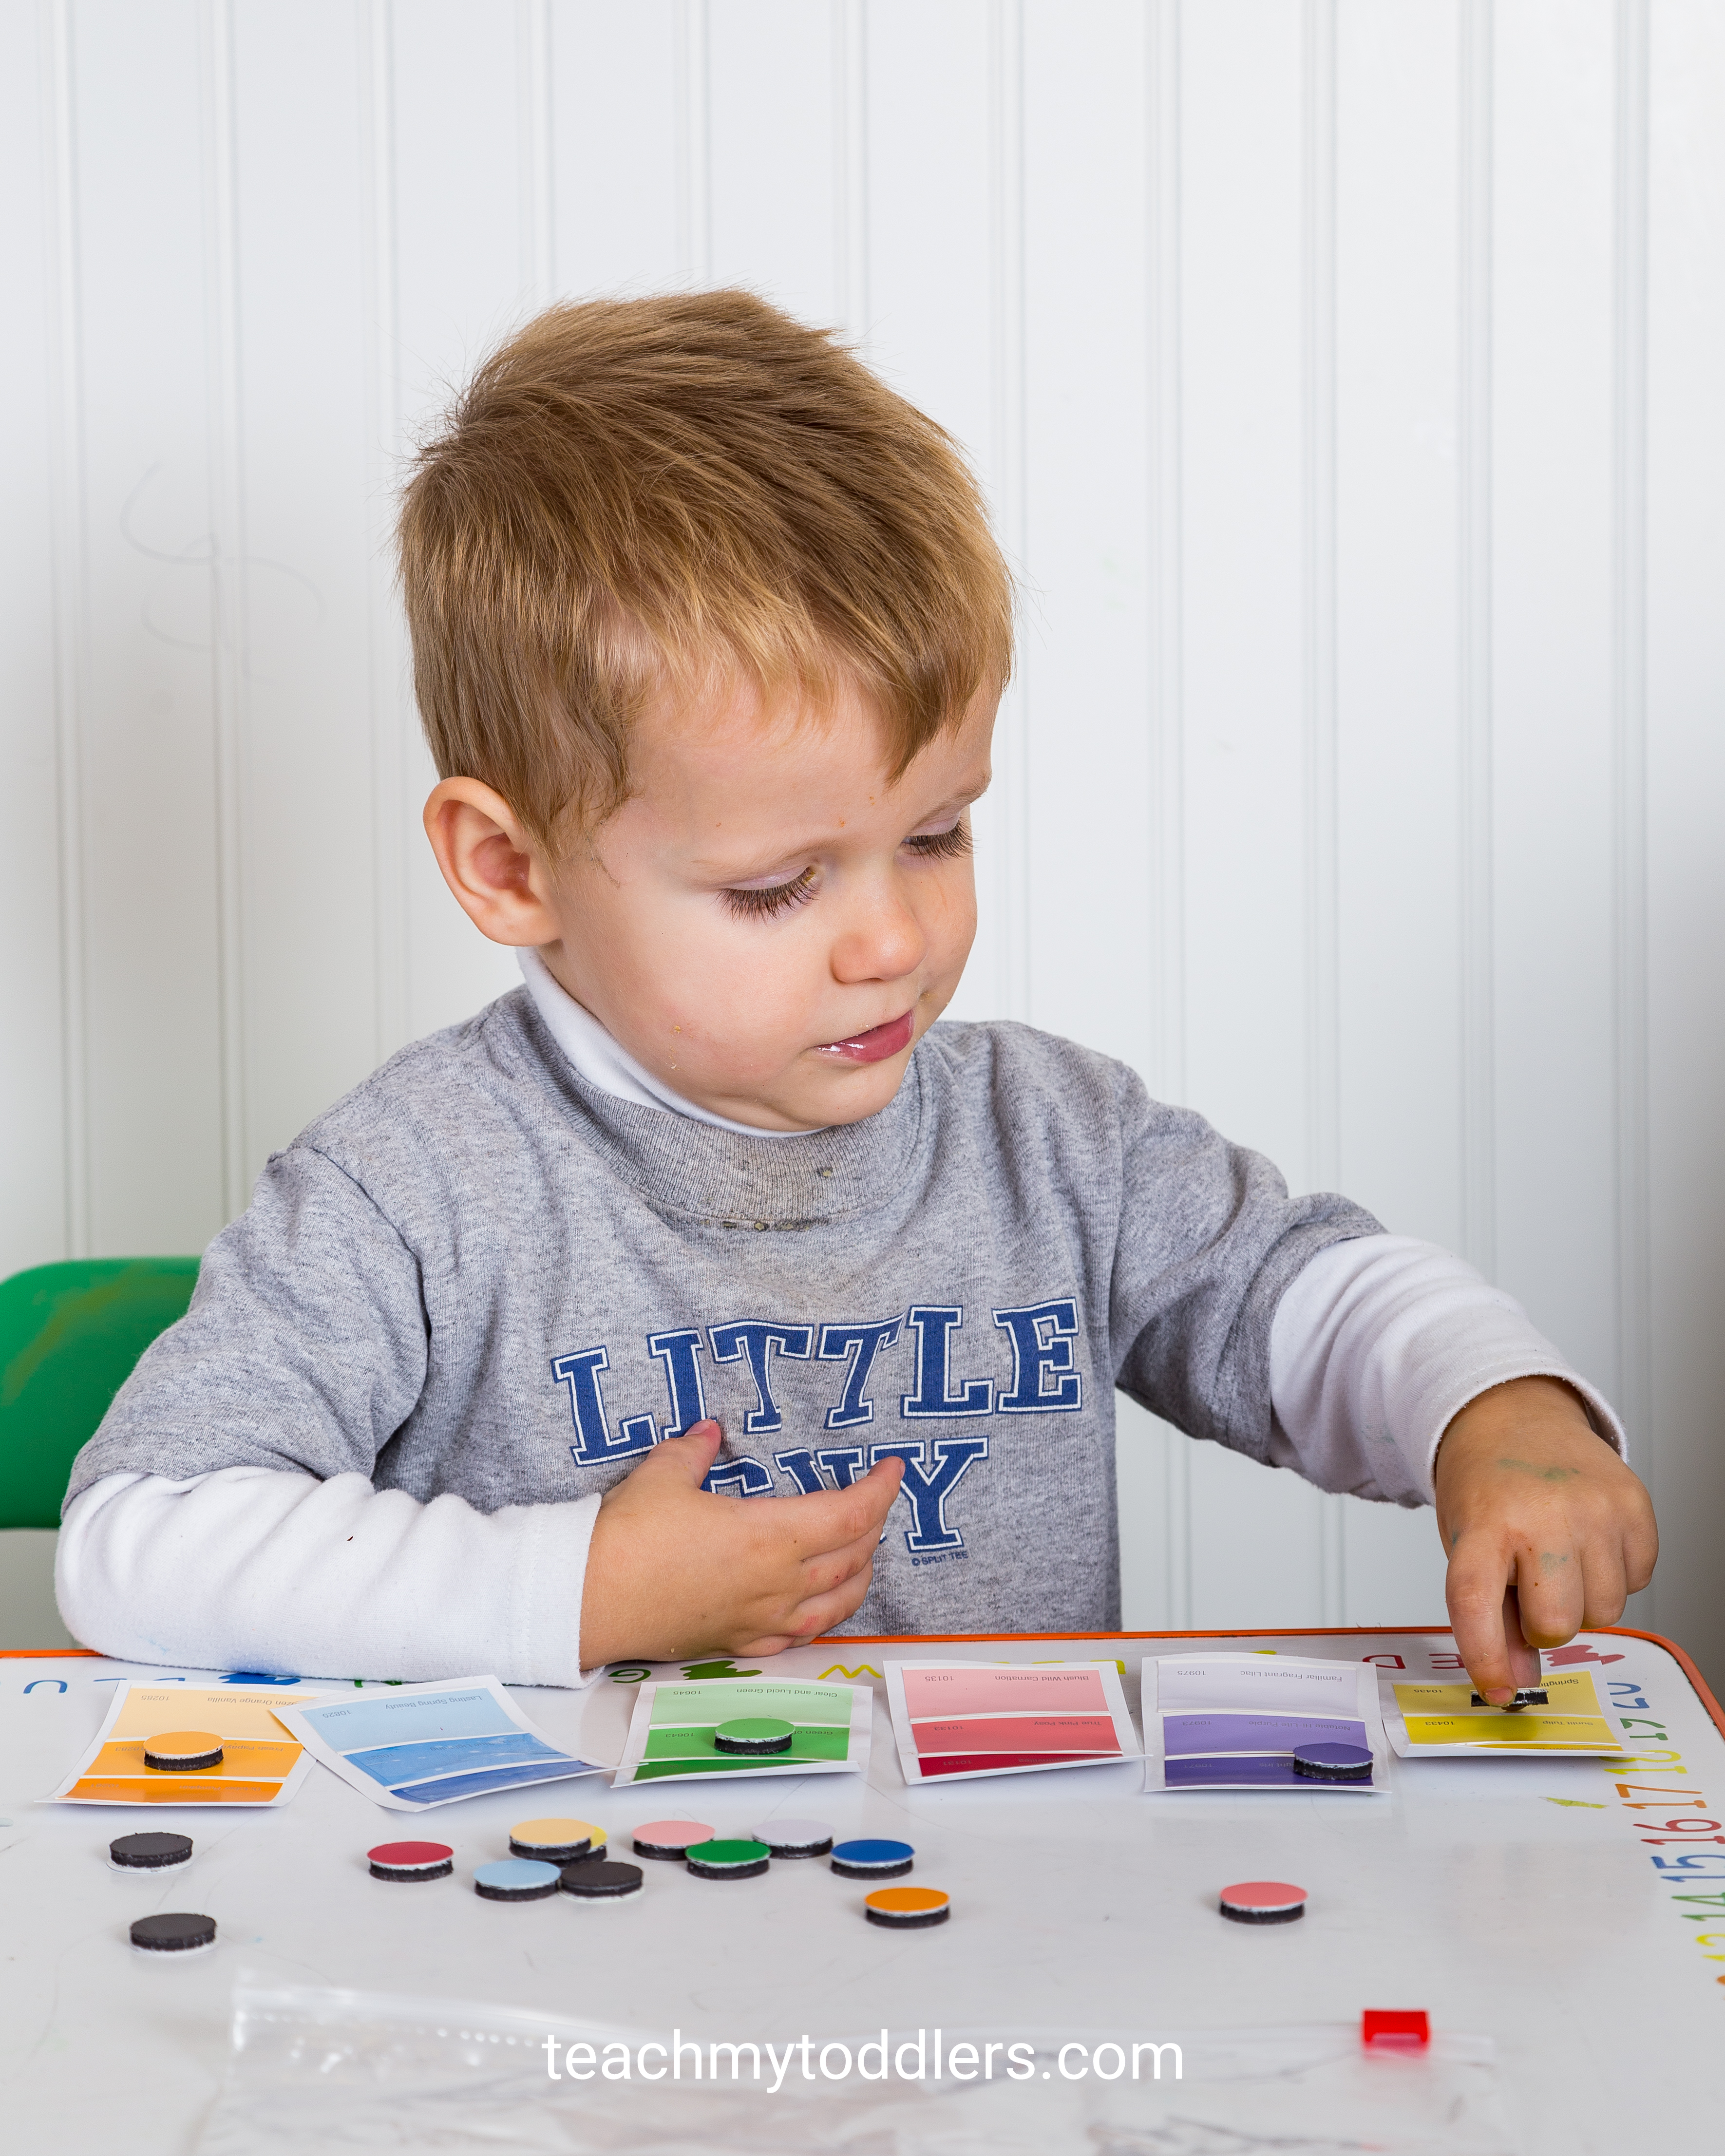 A fun matching game to teach toddlers colors using paint chips